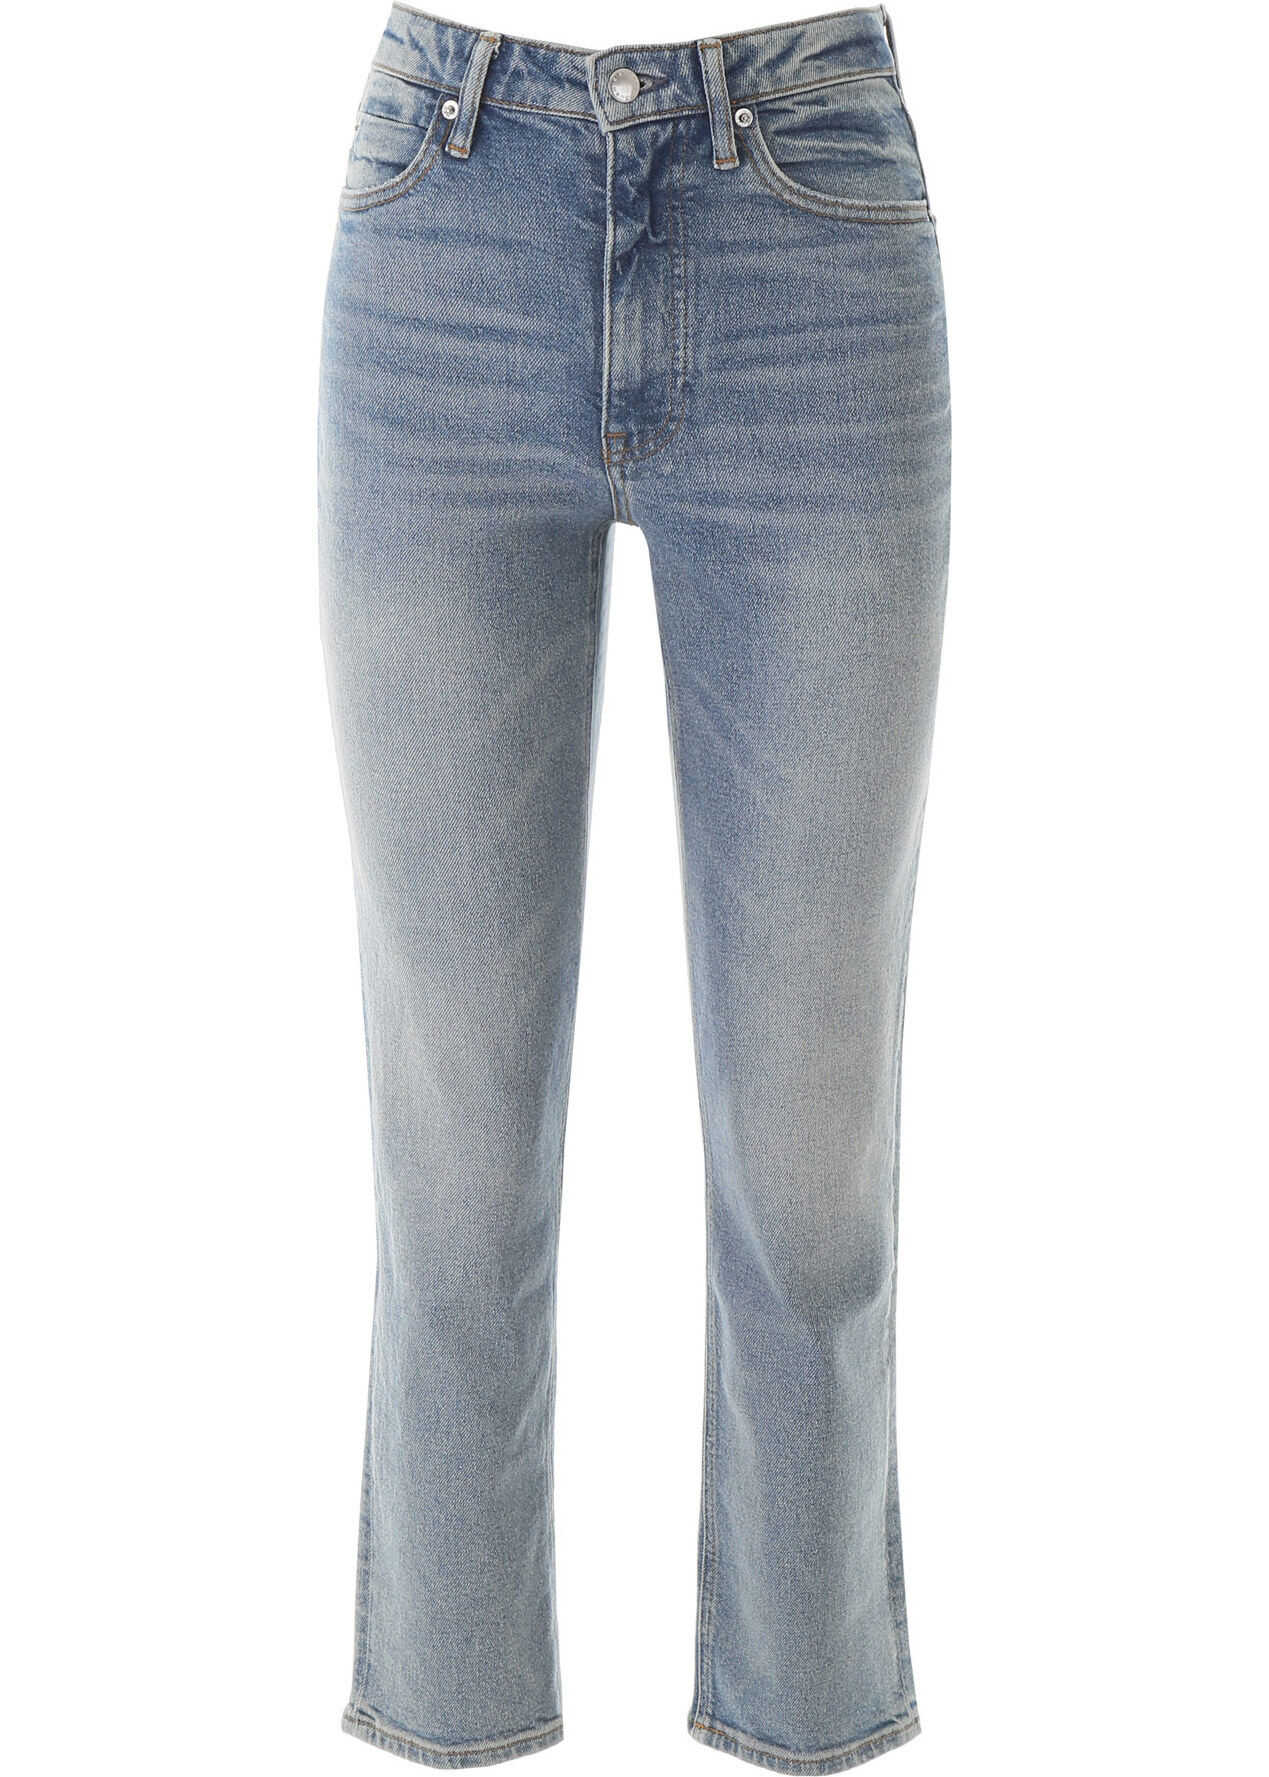 Alexander Wang Half Zip Jeans LIGHT INDIGO BLEACH